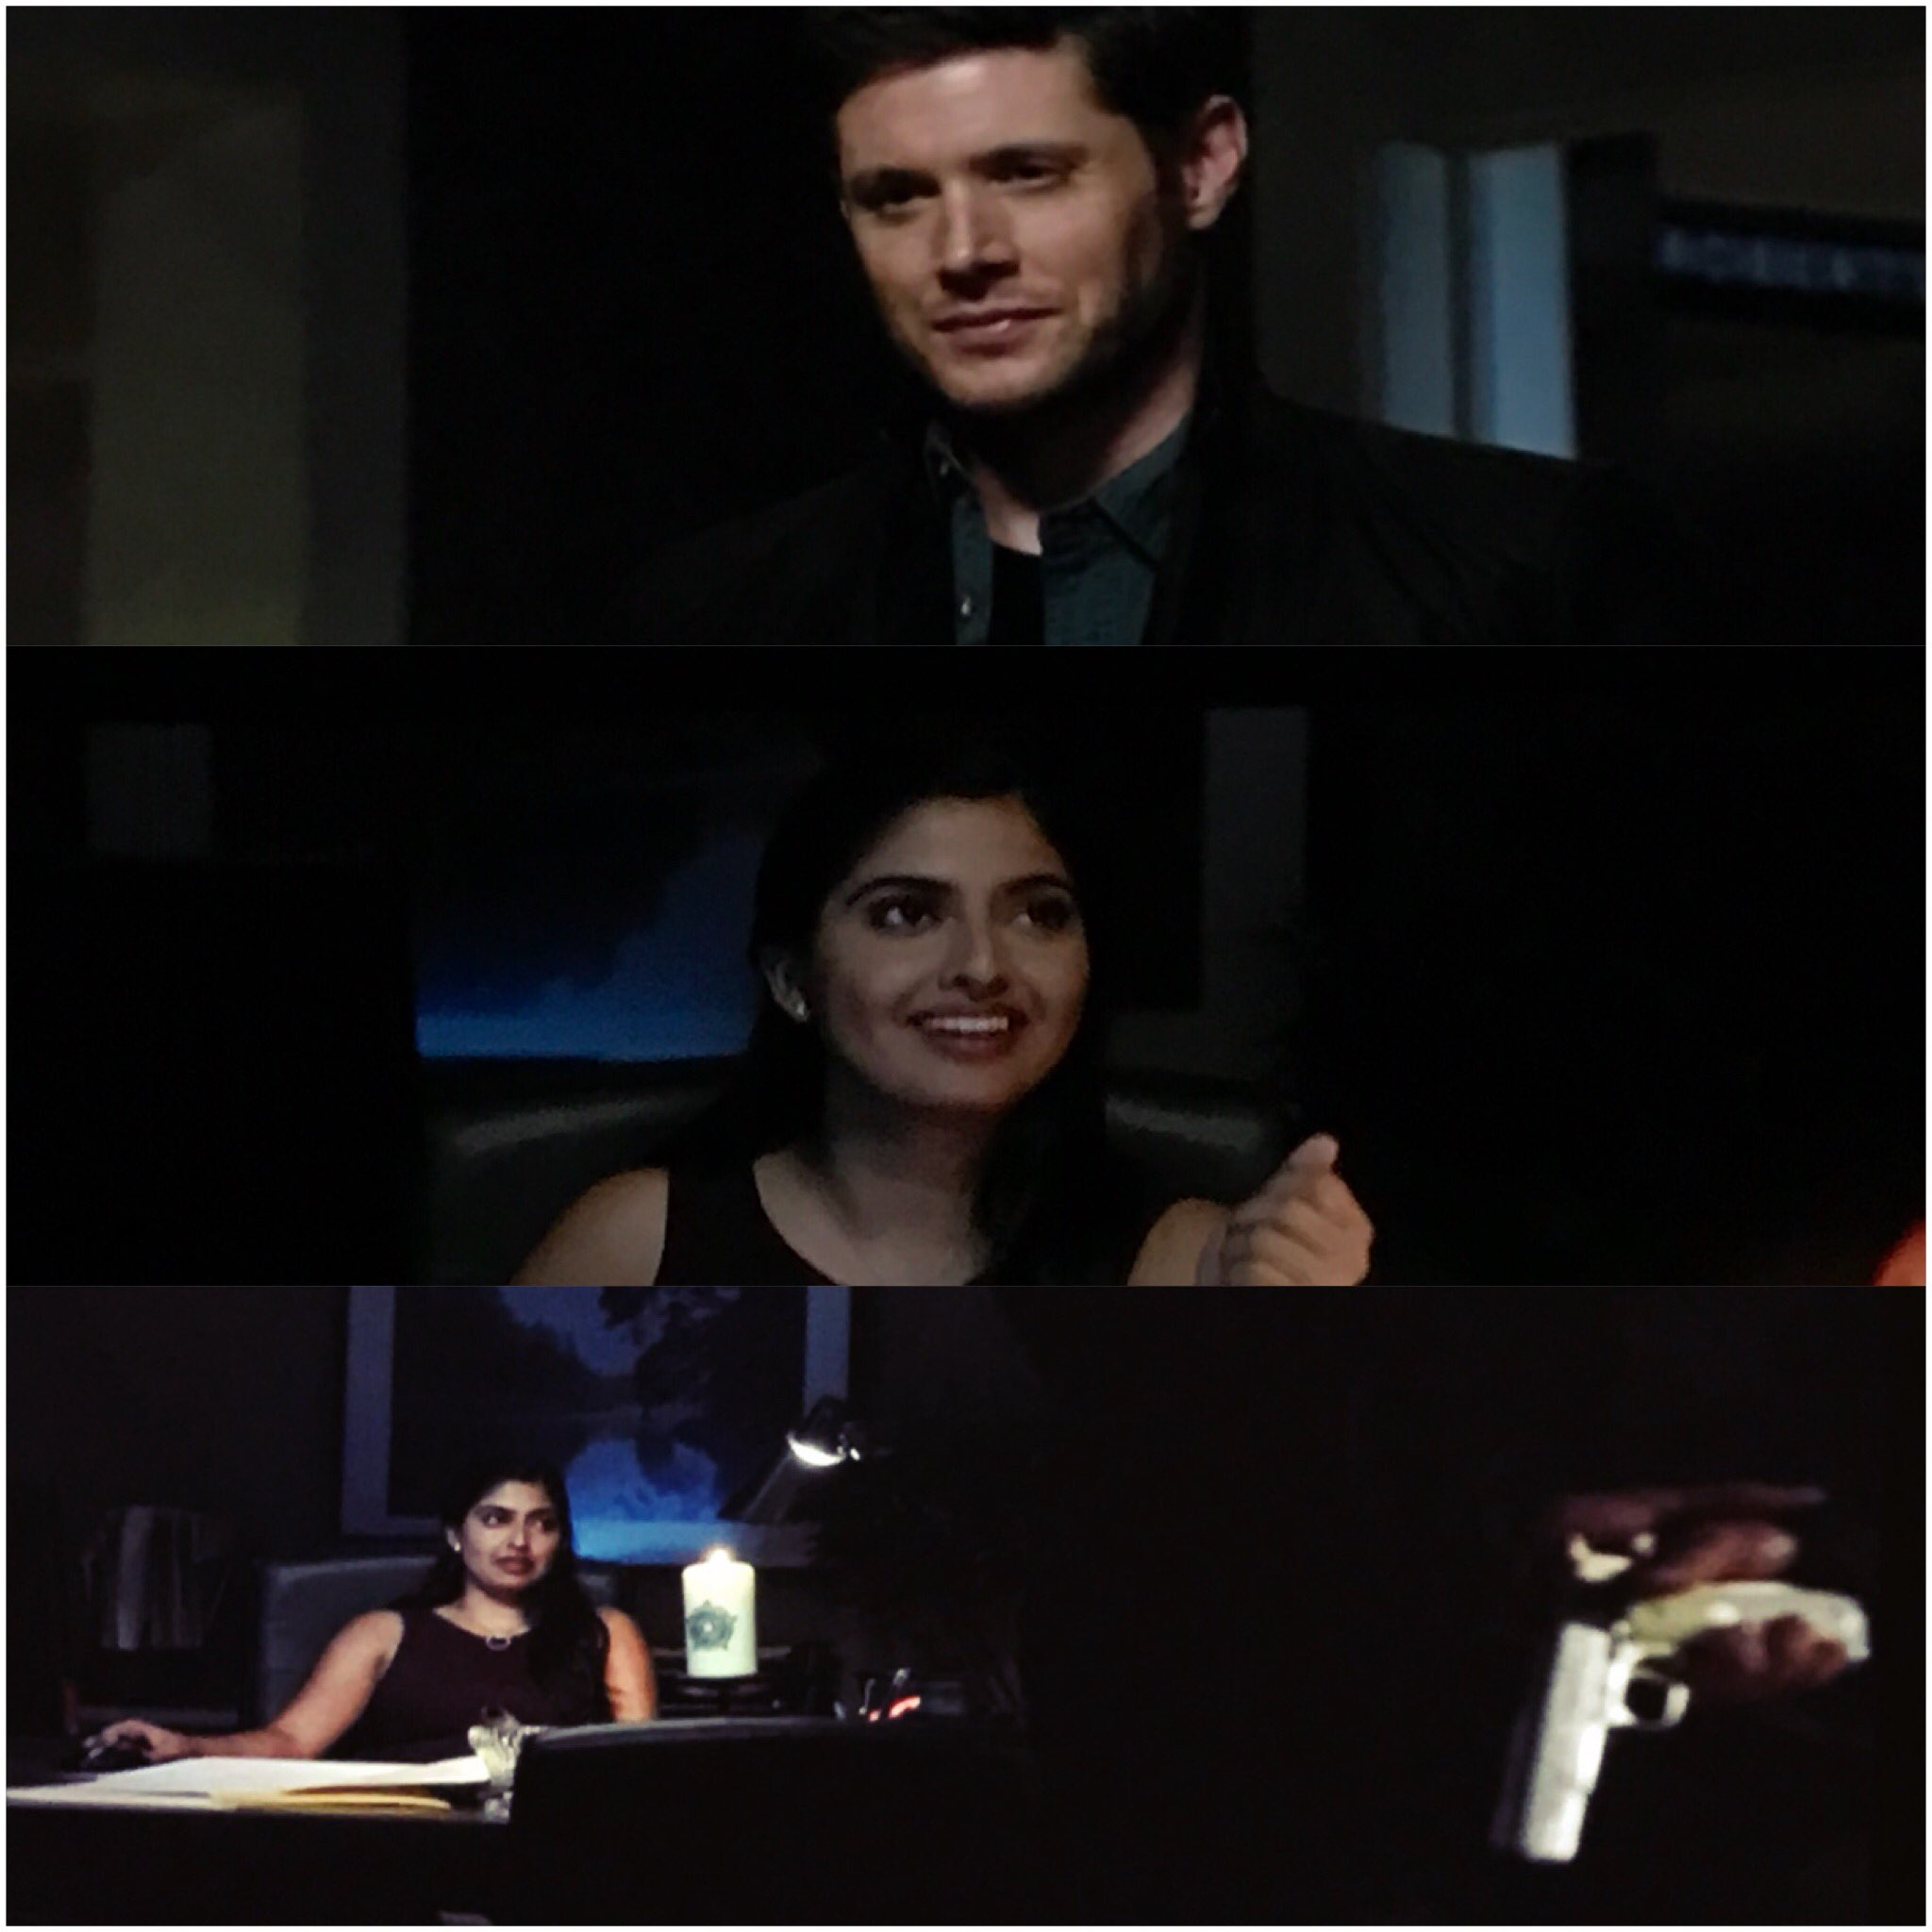 aliza vellani with jared padalecki jensen ackles movie tech geeks interview